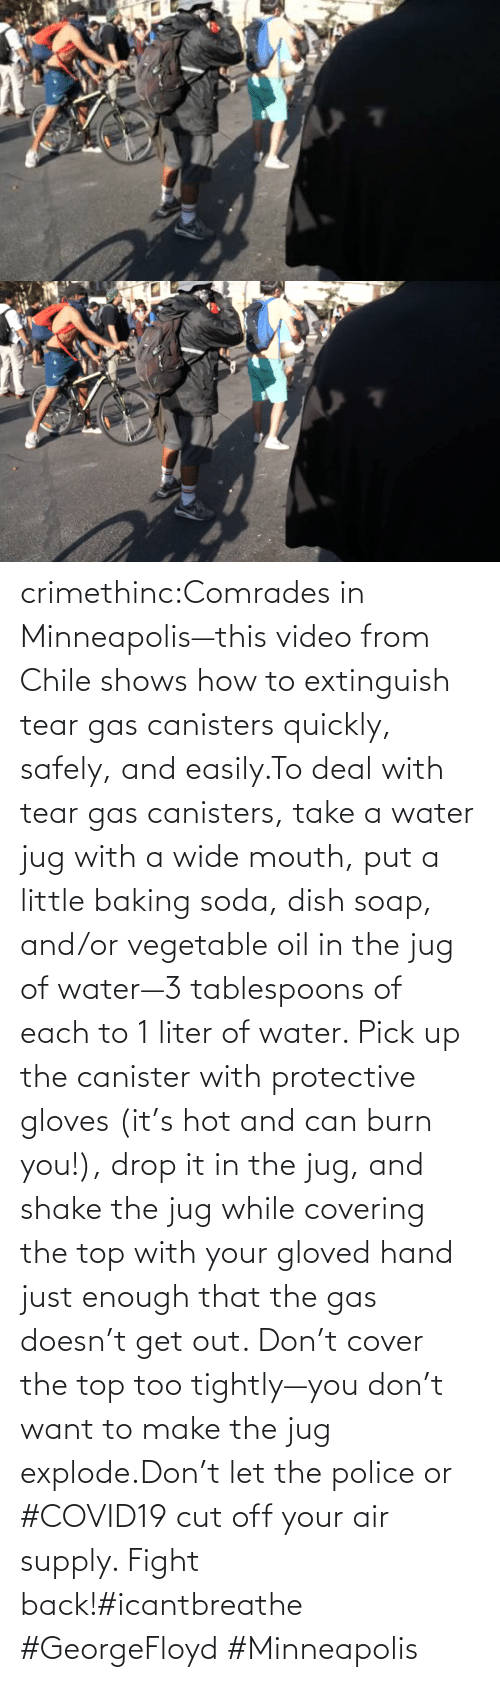 the police: crimethinc:Comrades in Minneapolis—this video from Chile shows how to extinguish tear gas canisters quickly, safely, and easily.To deal with tear gas canisters, take a water jug with a wide mouth, put a little baking soda, dish soap, and/or vegetable oil in the jug of water—3 tablespoons of each to 1 liter of water. Pick up the canister with protective gloves (it's hot and can burn you!), drop it in the jug, and shake the jug while covering the top with your gloved hand just enough that the gas doesn't get out. Don't cover the top too tightly—you don't want to make the jug explode.Don't let the police or #COVID19 cut off your air supply. Fight back!#icantbreathe #GeorgeFloyd #Minneapolis